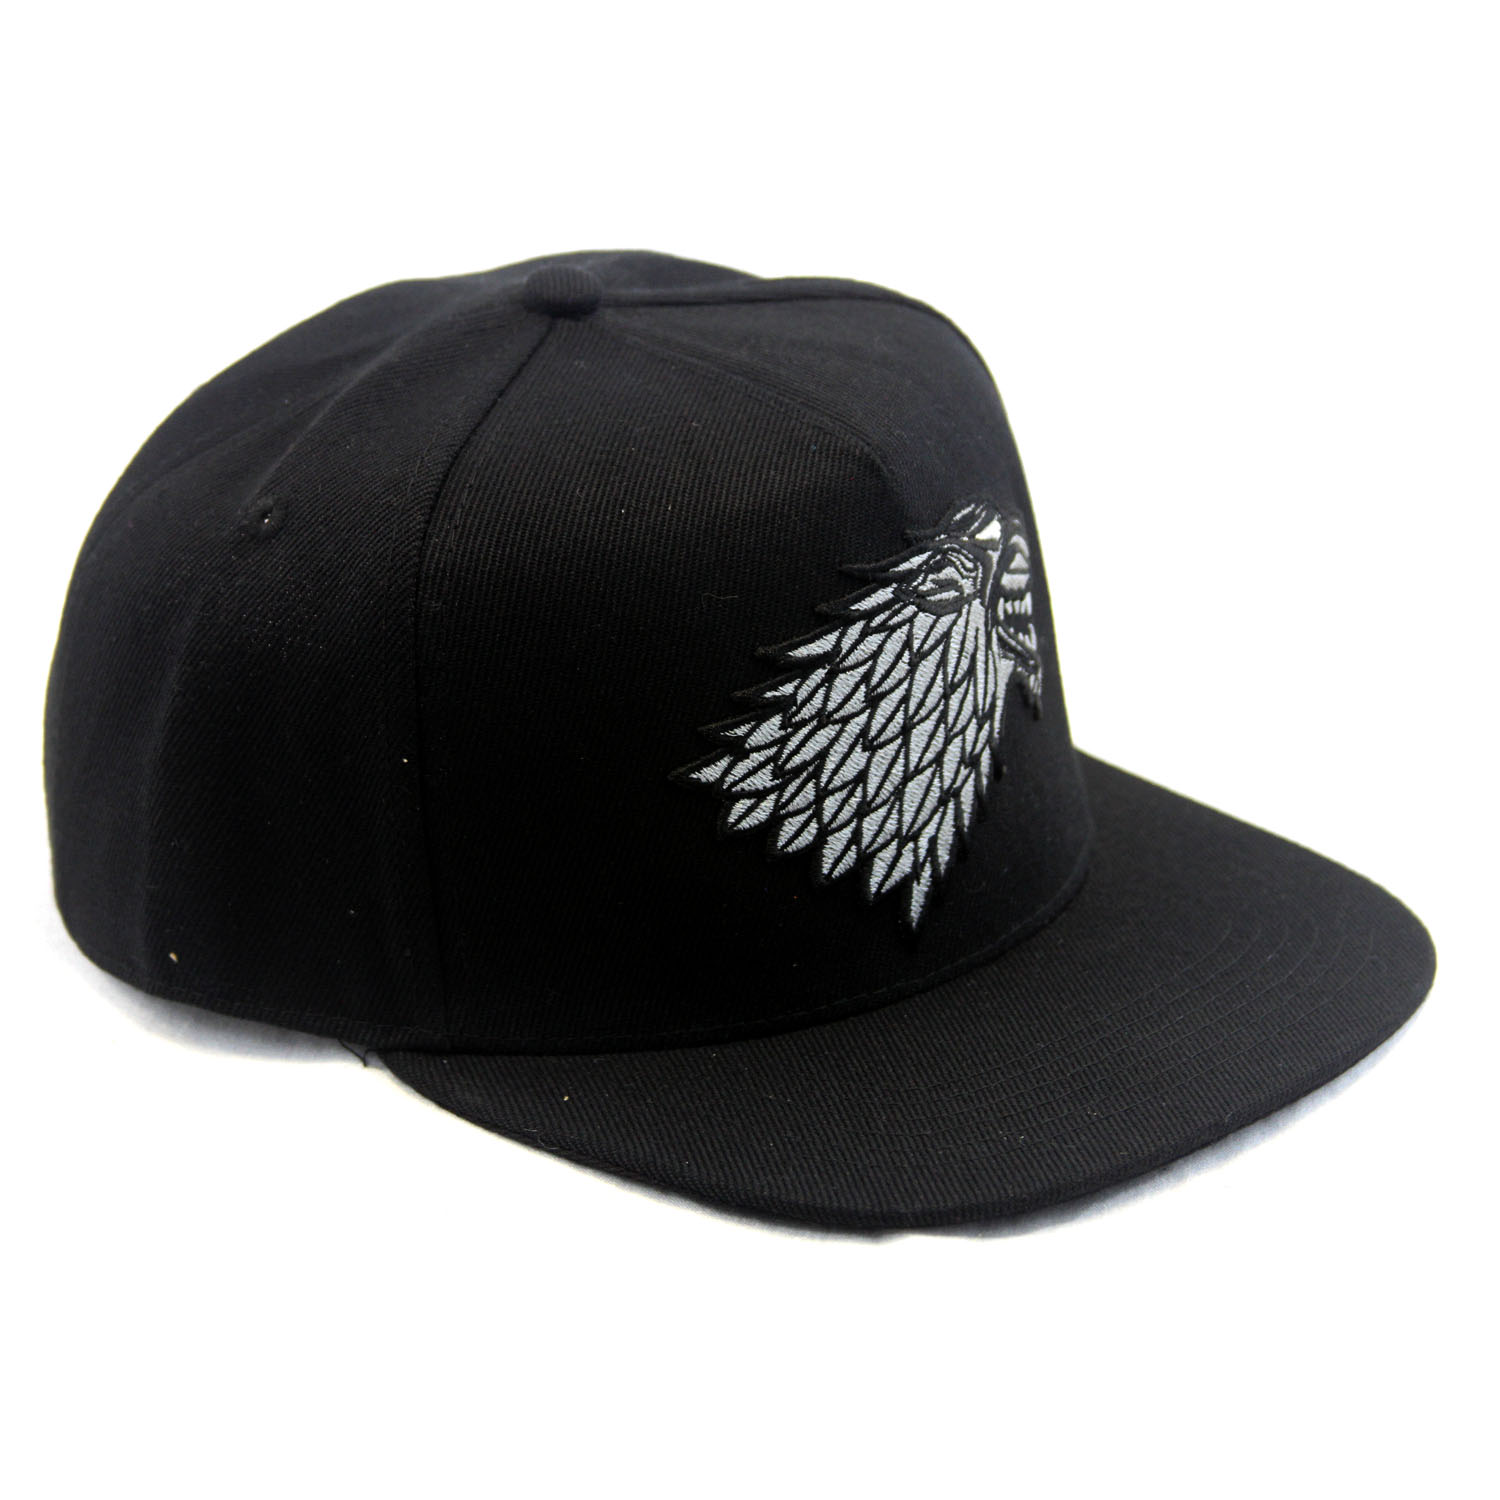 House Stark Direwolf Baseball Cap - Game of Thrones New (Snapback Hat) 1af3d20feeb